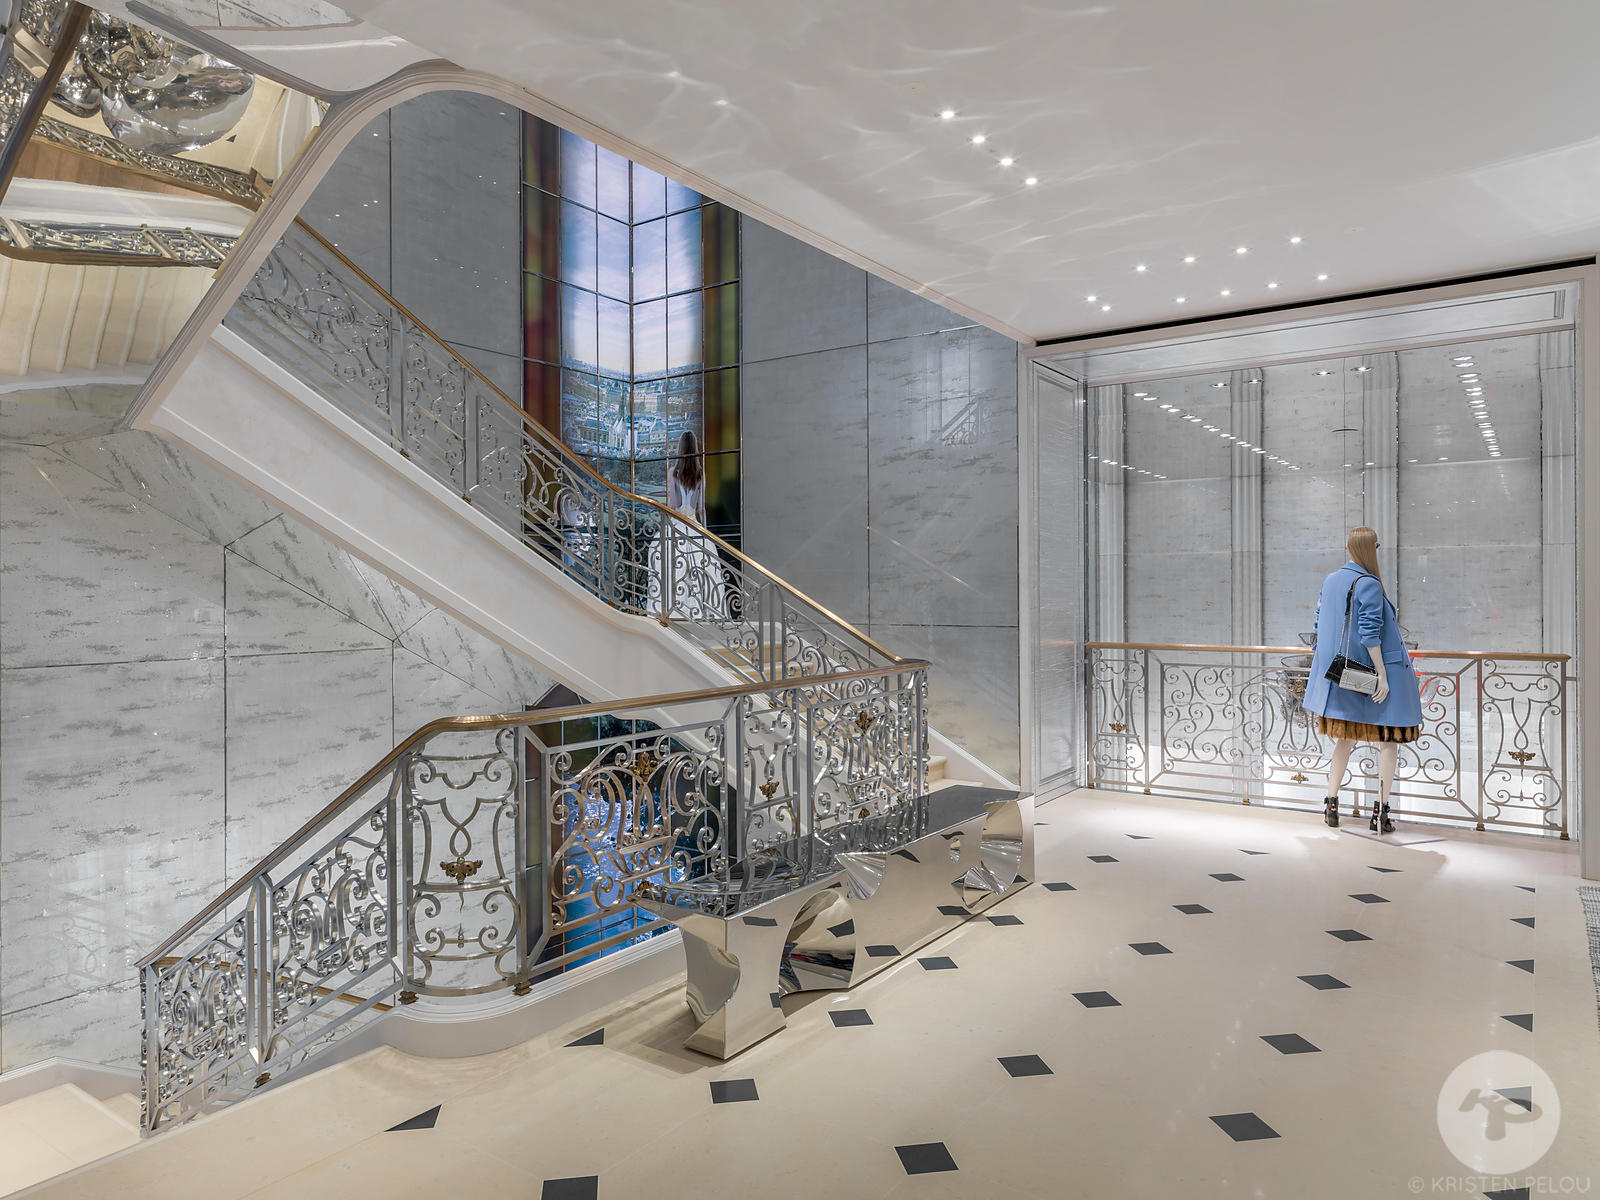 Retail architecture photographer - Dior flagship New Bond Street, London. Photo ©Kristen Pelou